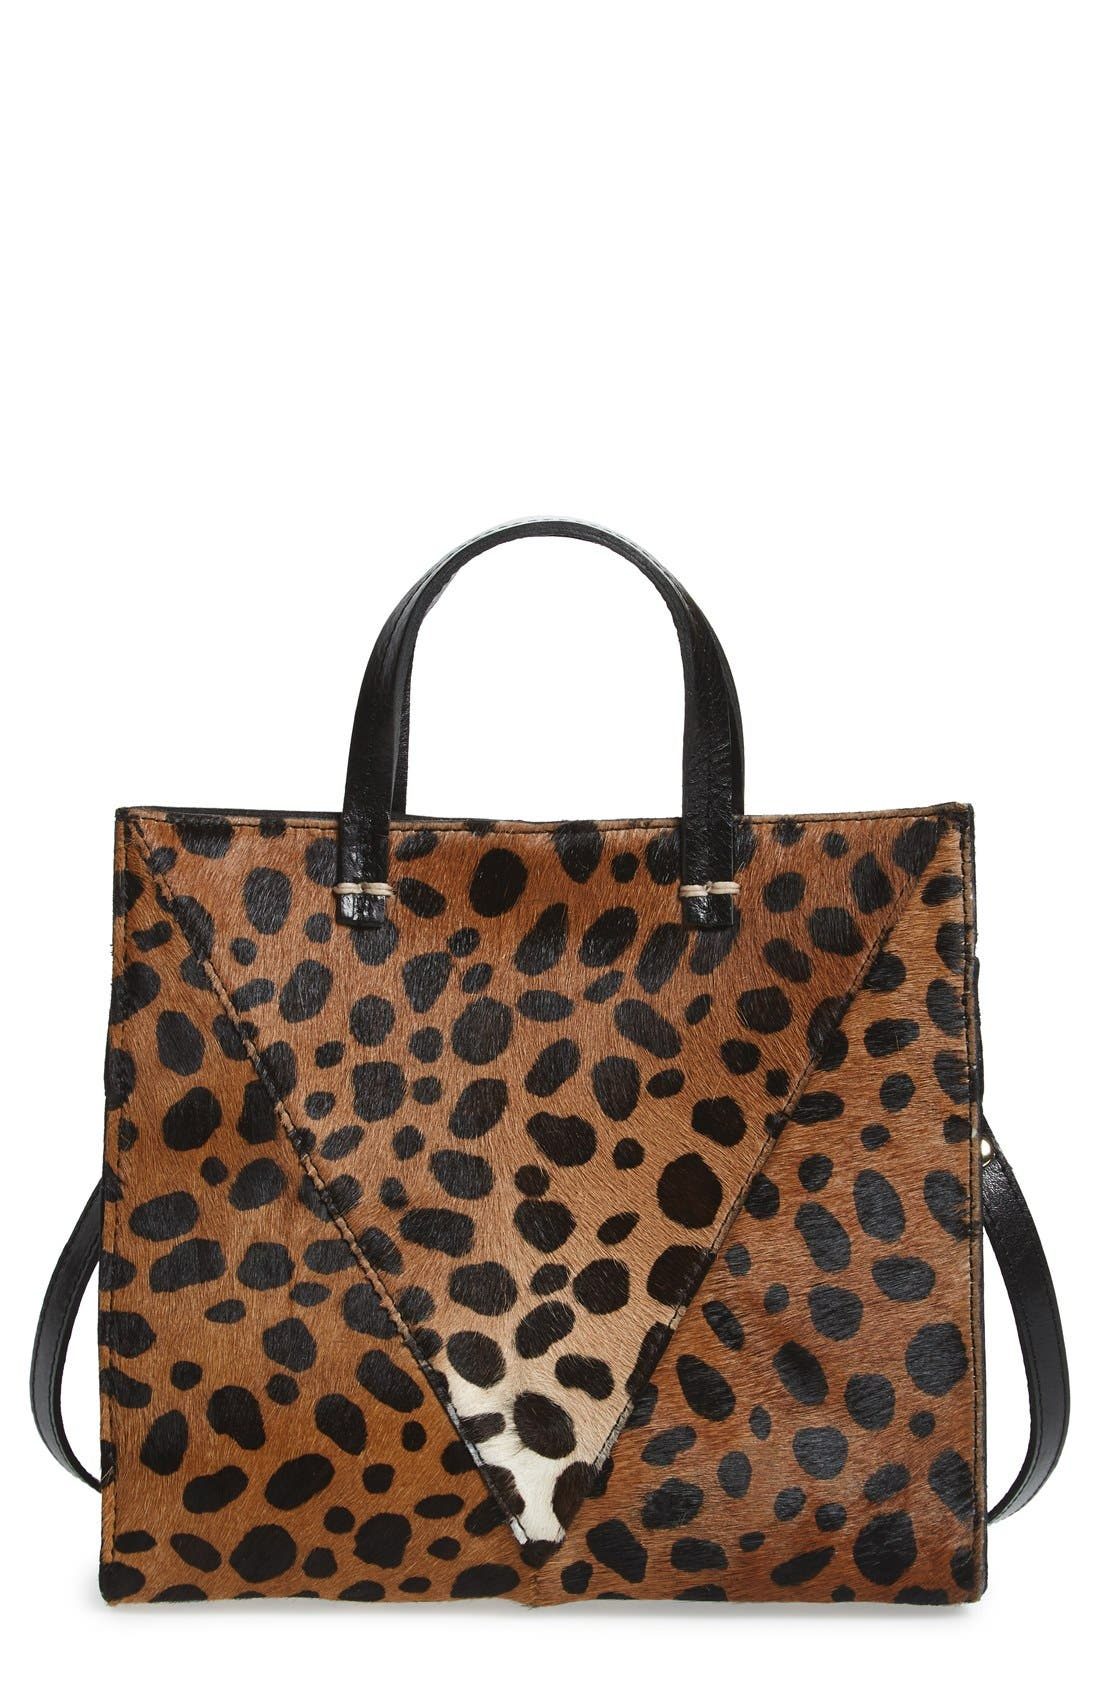 Main Image - Clare V. 'Petit Simple' Leopard Print Genuine Calf Hair Tote